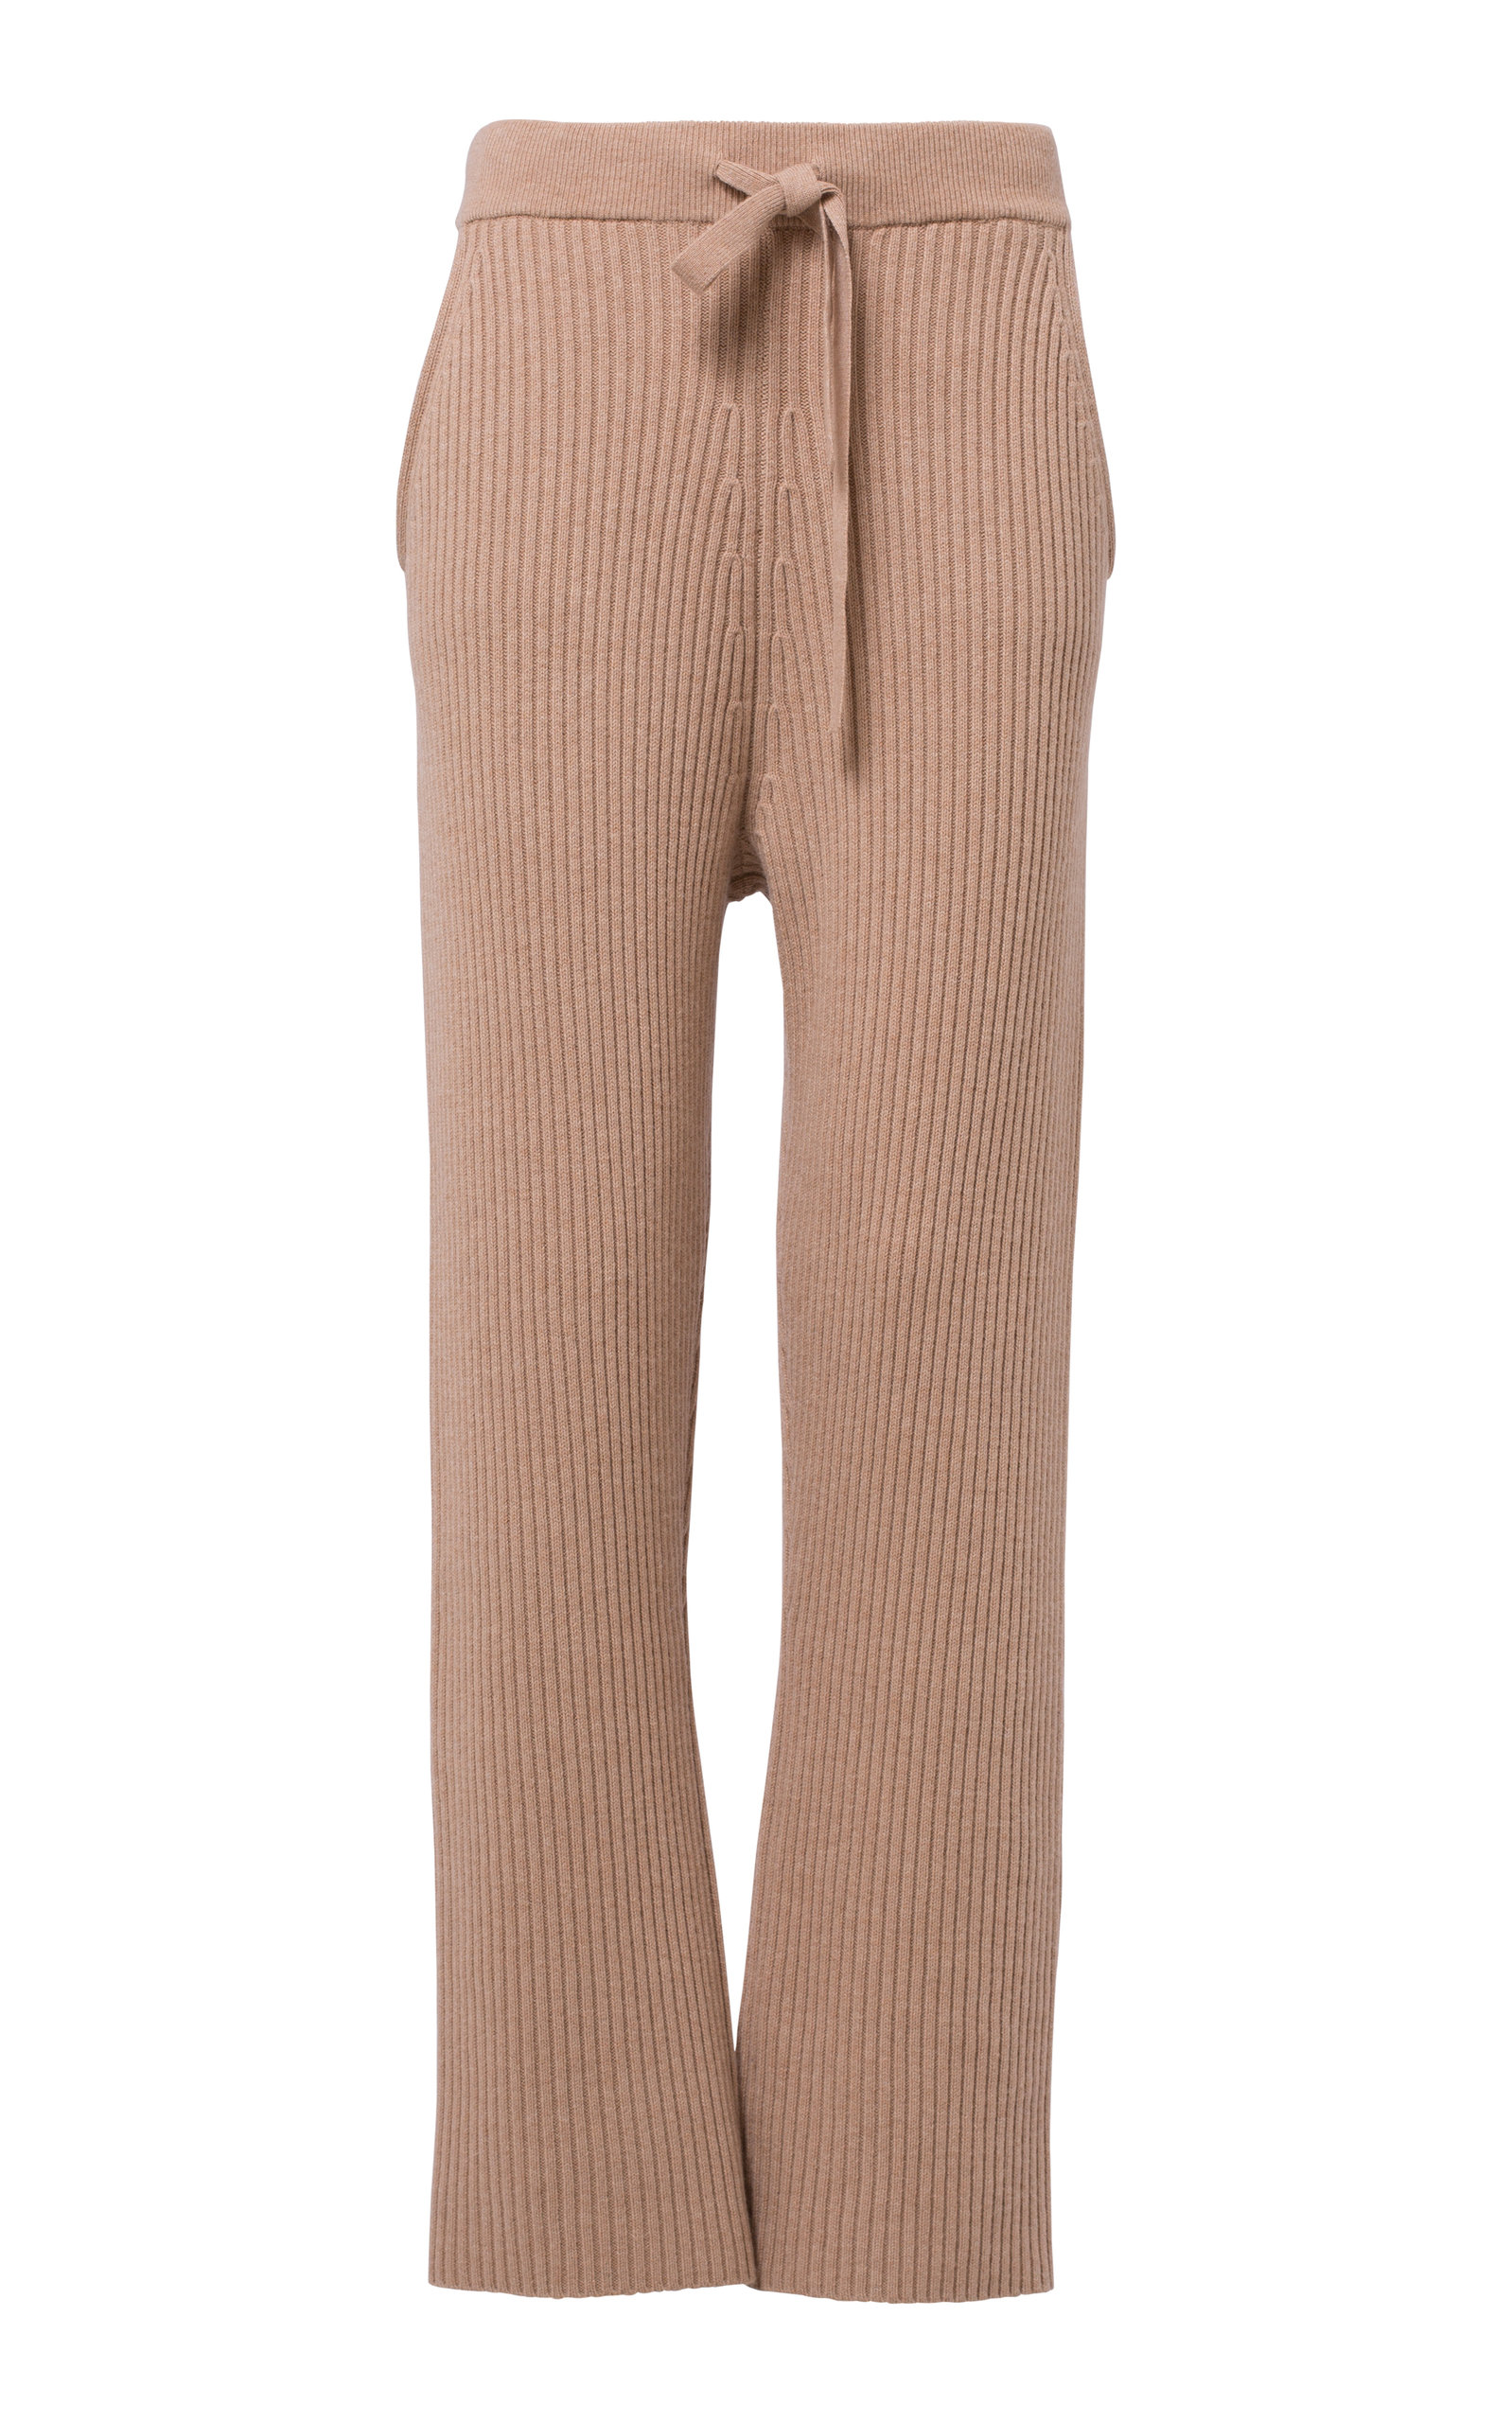 DOROTHEE SCHUMACHER DECONSTRUCTED LOOK RIBBED-KNIT PANTS